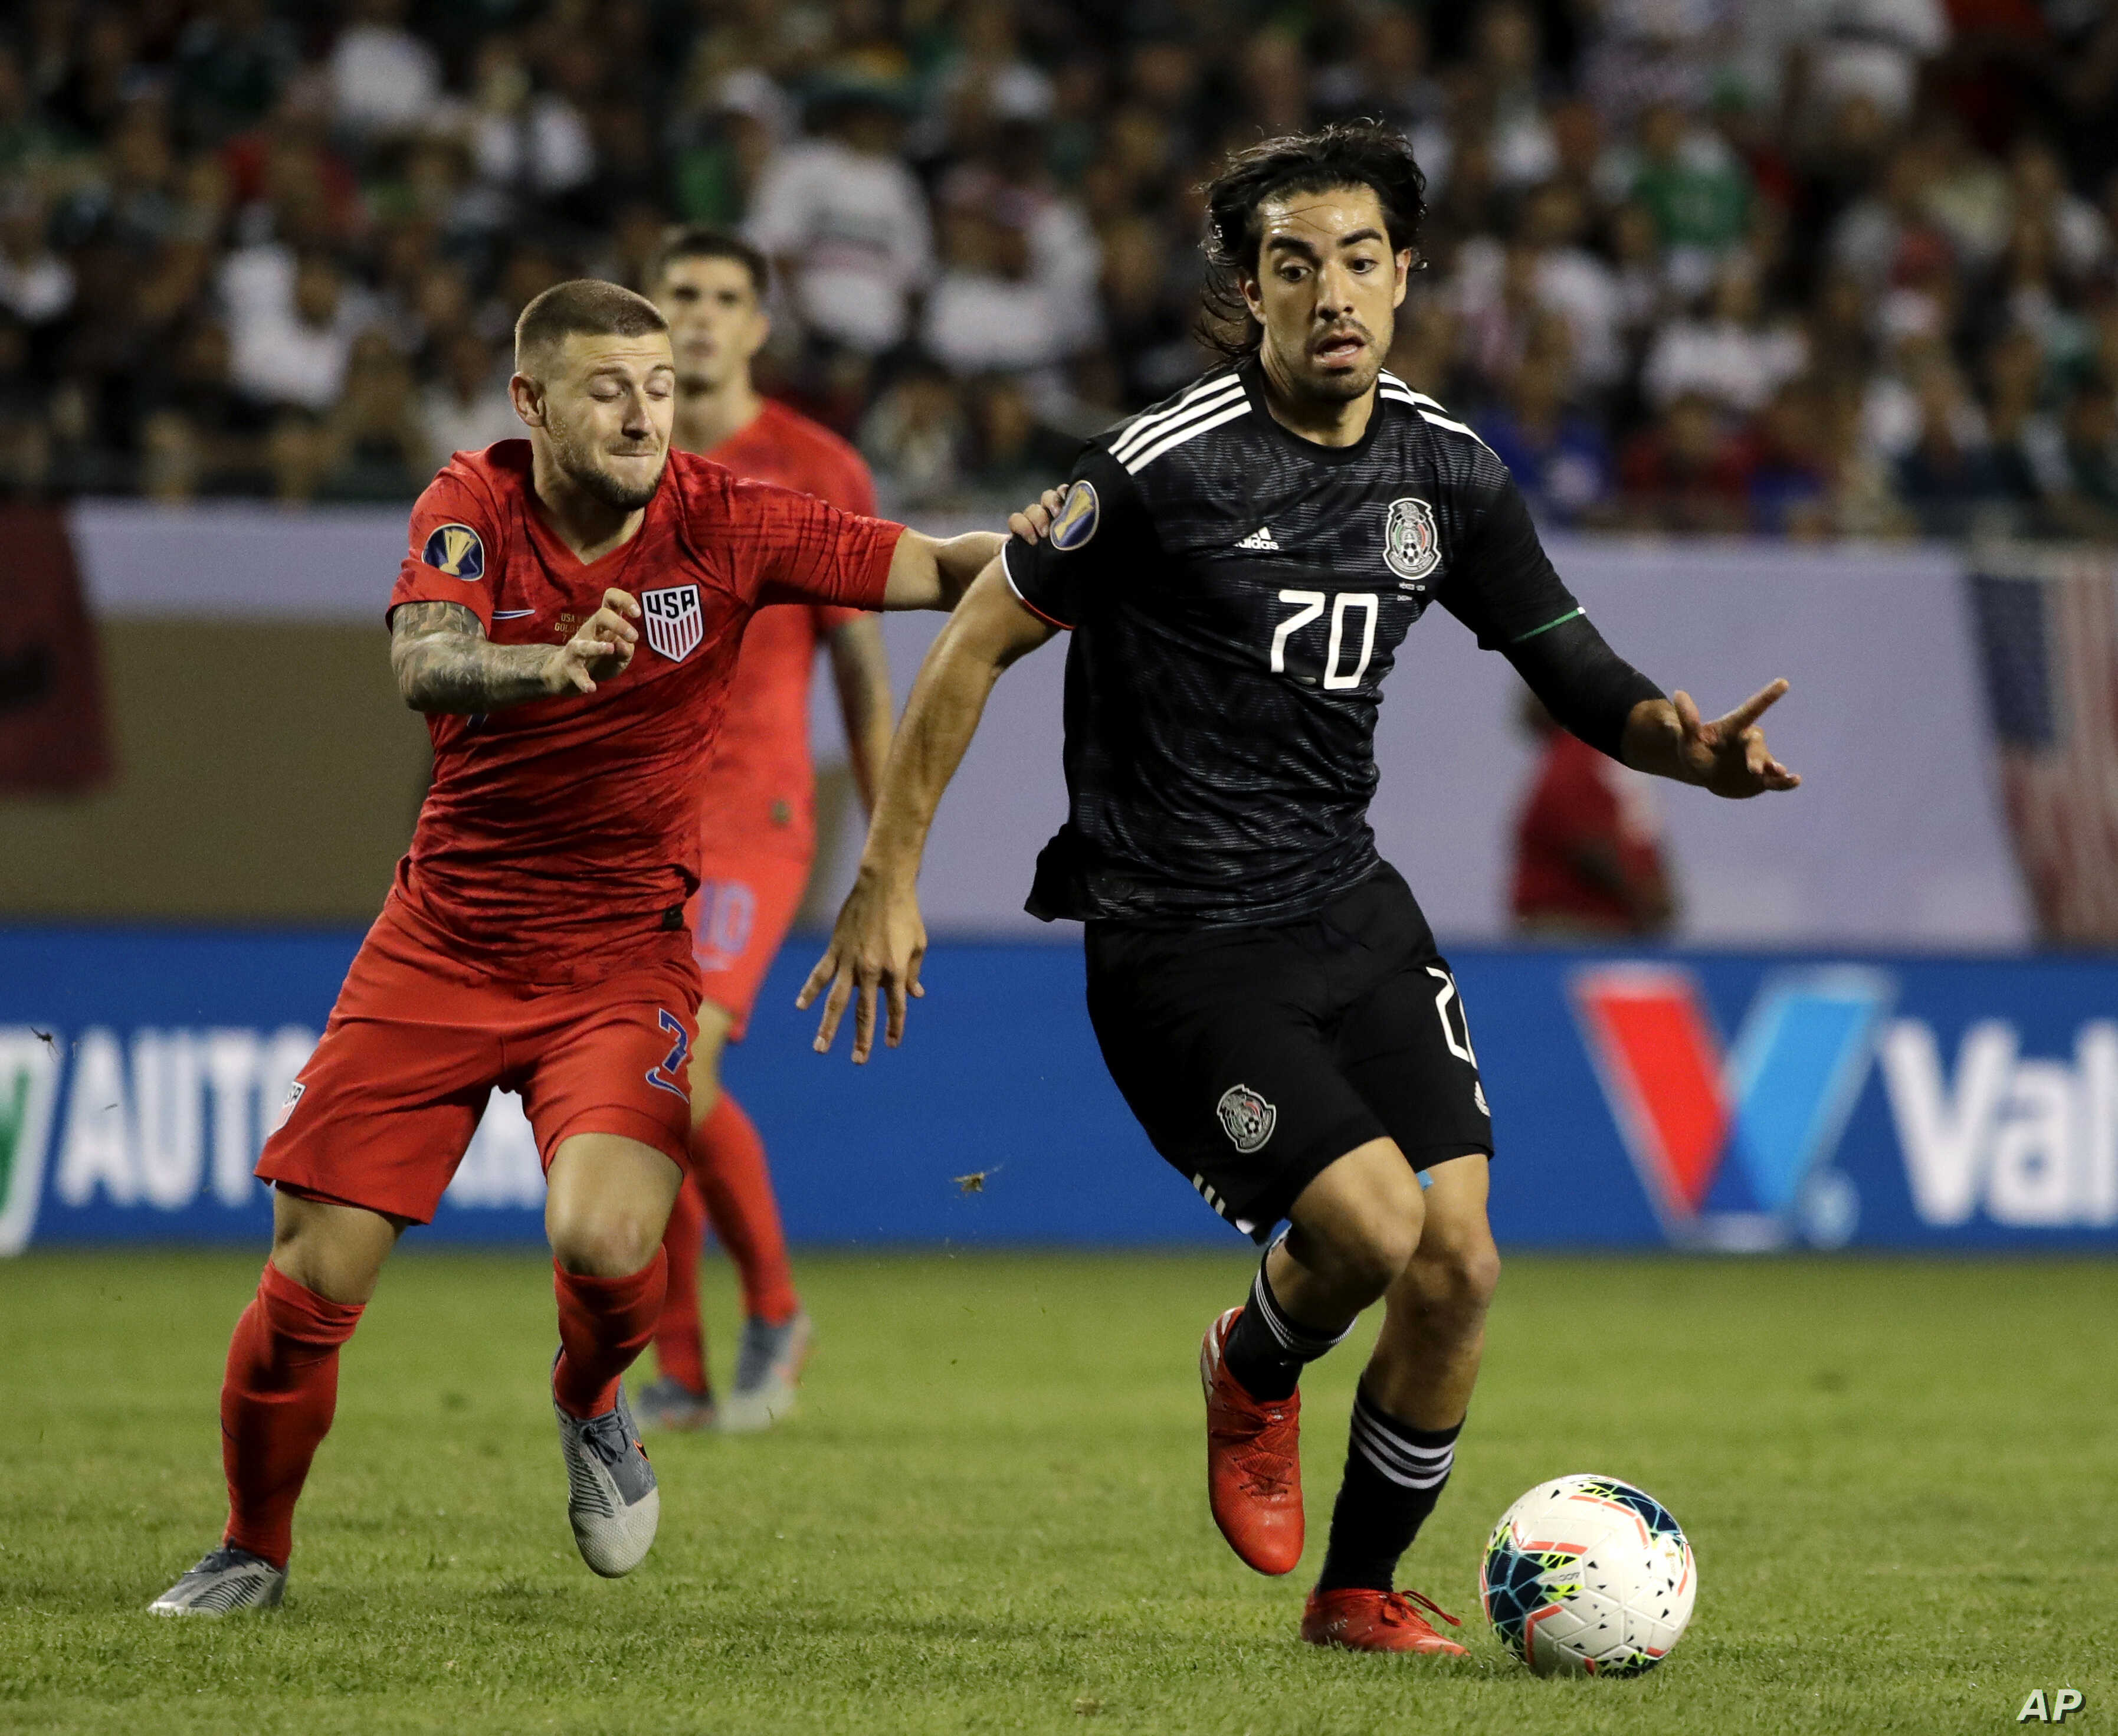 Mexico forward Rodolfo Pizarro, right, controls the ball against United States forward Paul Arriola during the second half of th